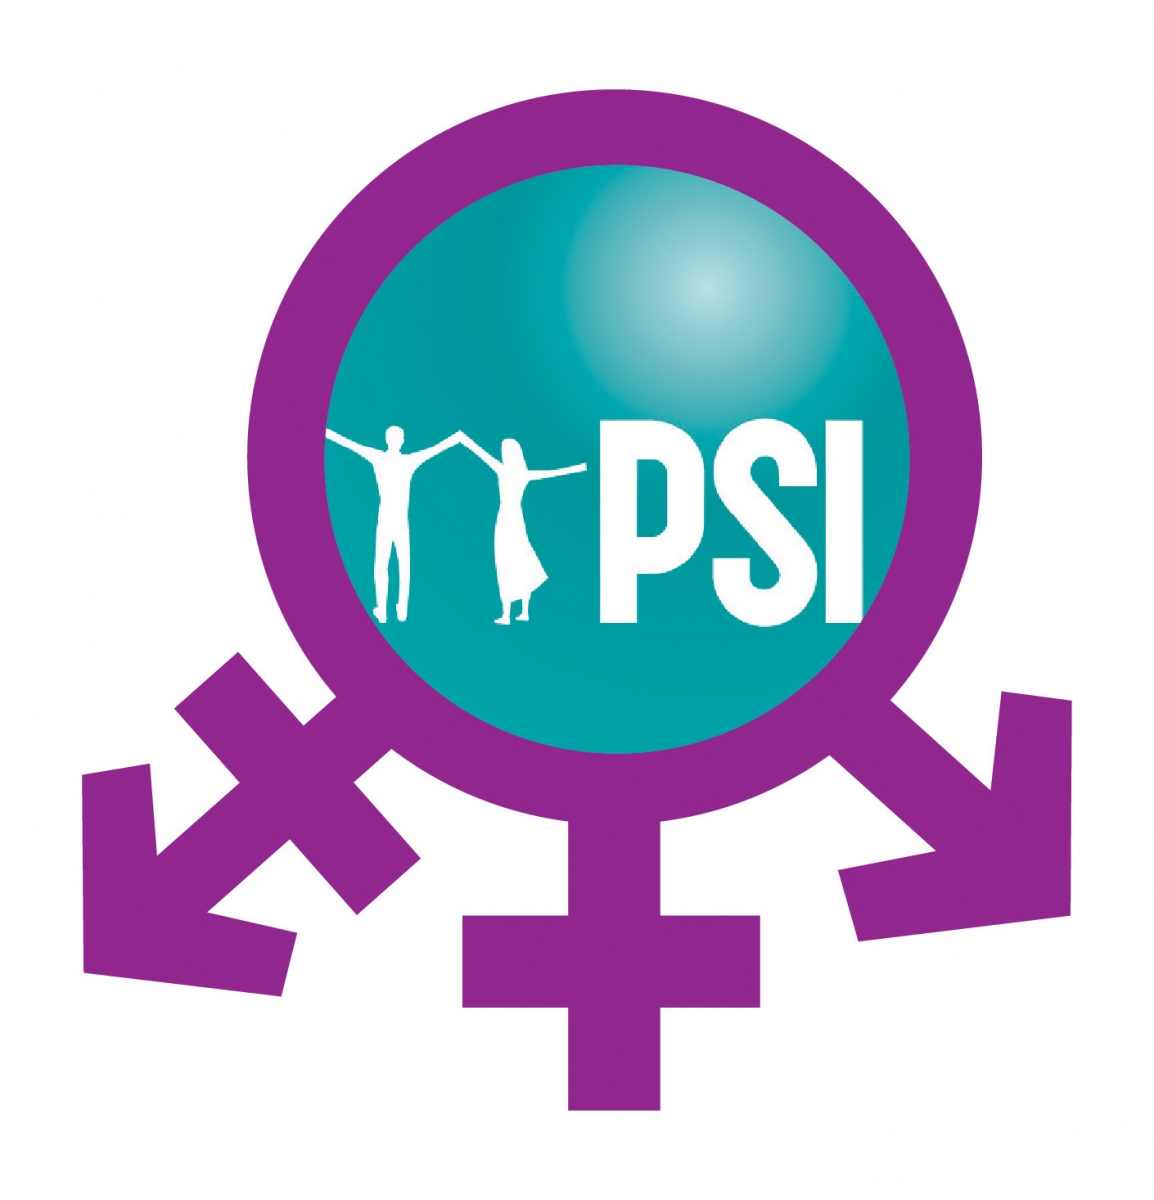 PSI Gender logo